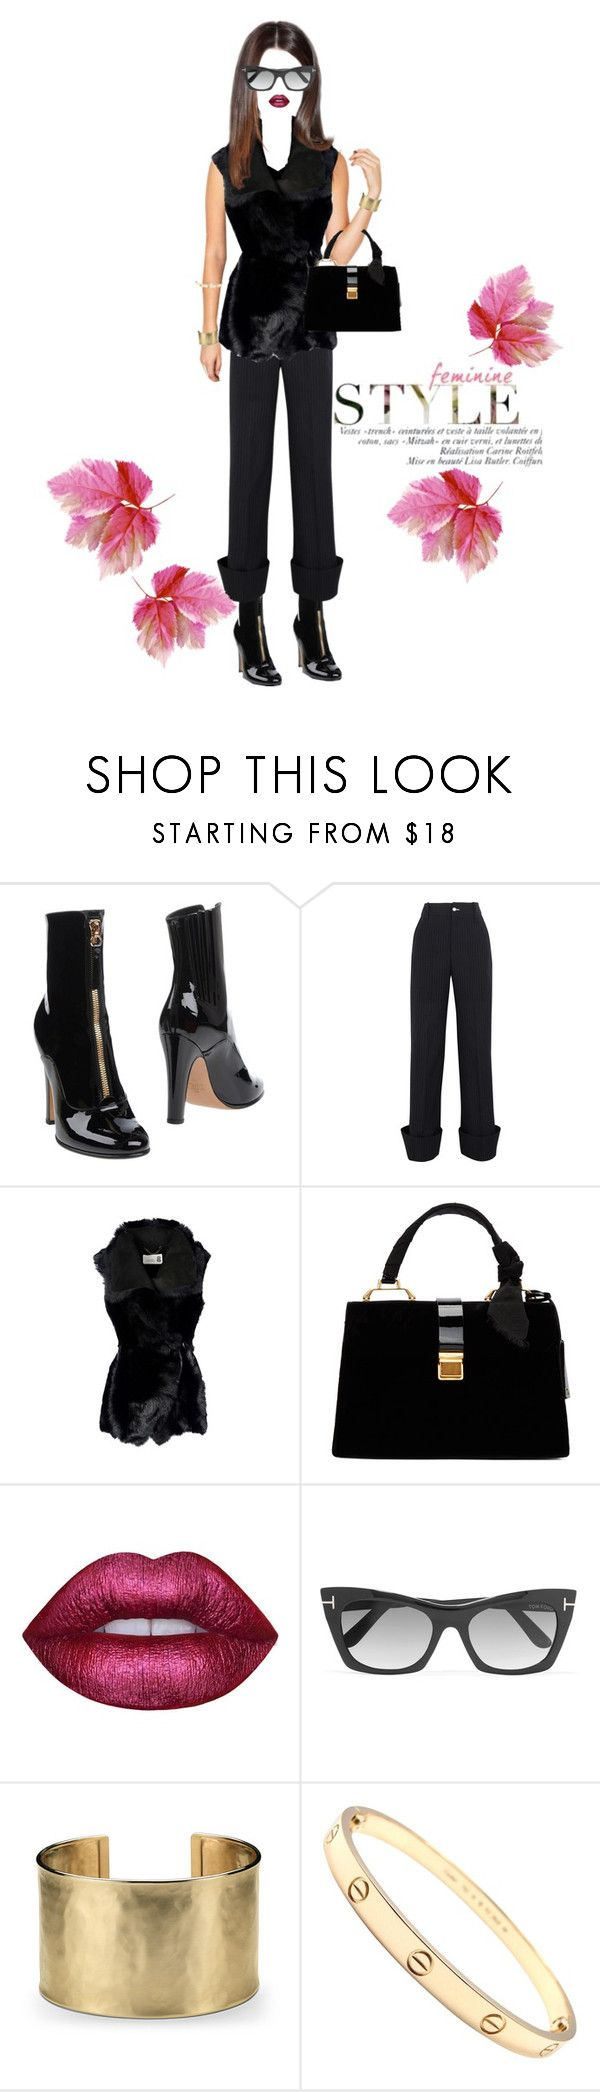 """""""Feminine Mystique"""" by shellygregory ❤ liked on Polyvore featuring Valentino, Jacquemus, 8, Miu Miu, Tom Ford, Blue Nile and Cartier"""